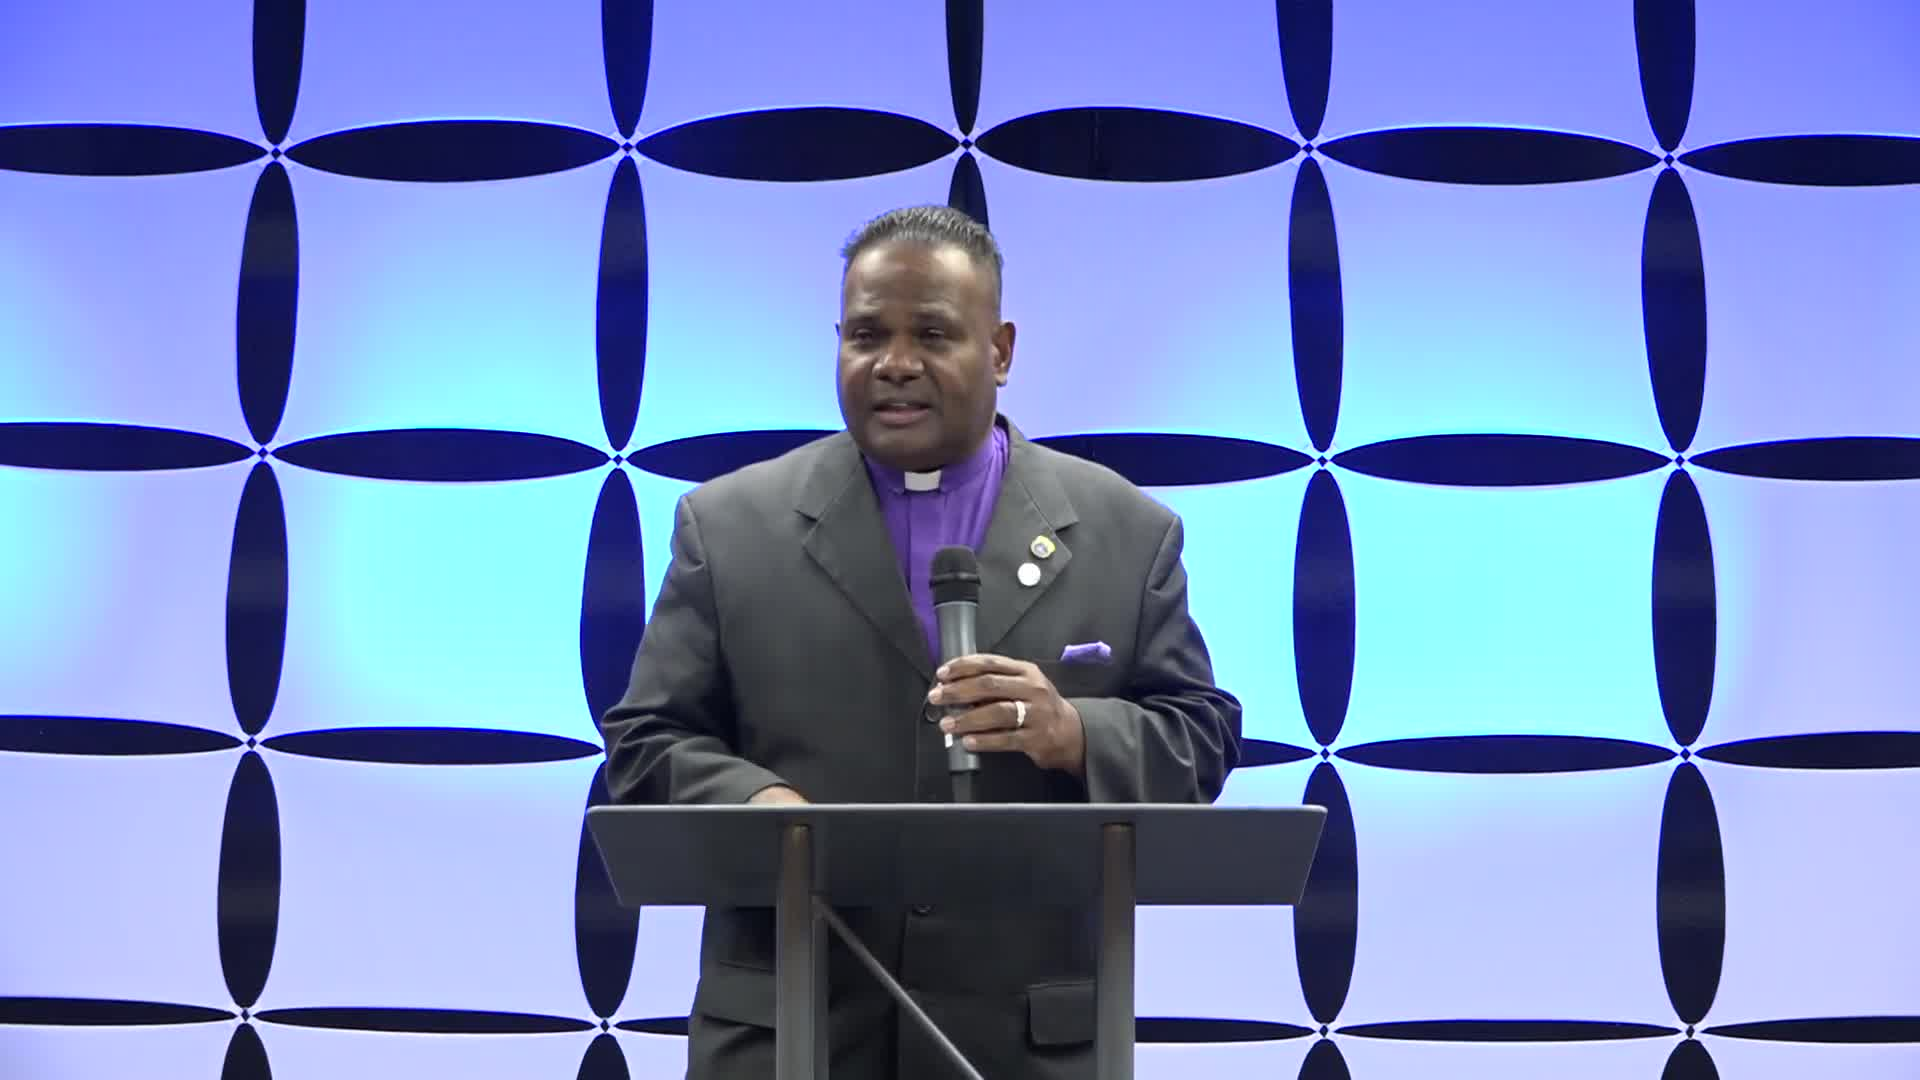 Dr. Phillip Phinn (The Law of Three) at The Body of Christ Church Int'l USA on November 3, 2019